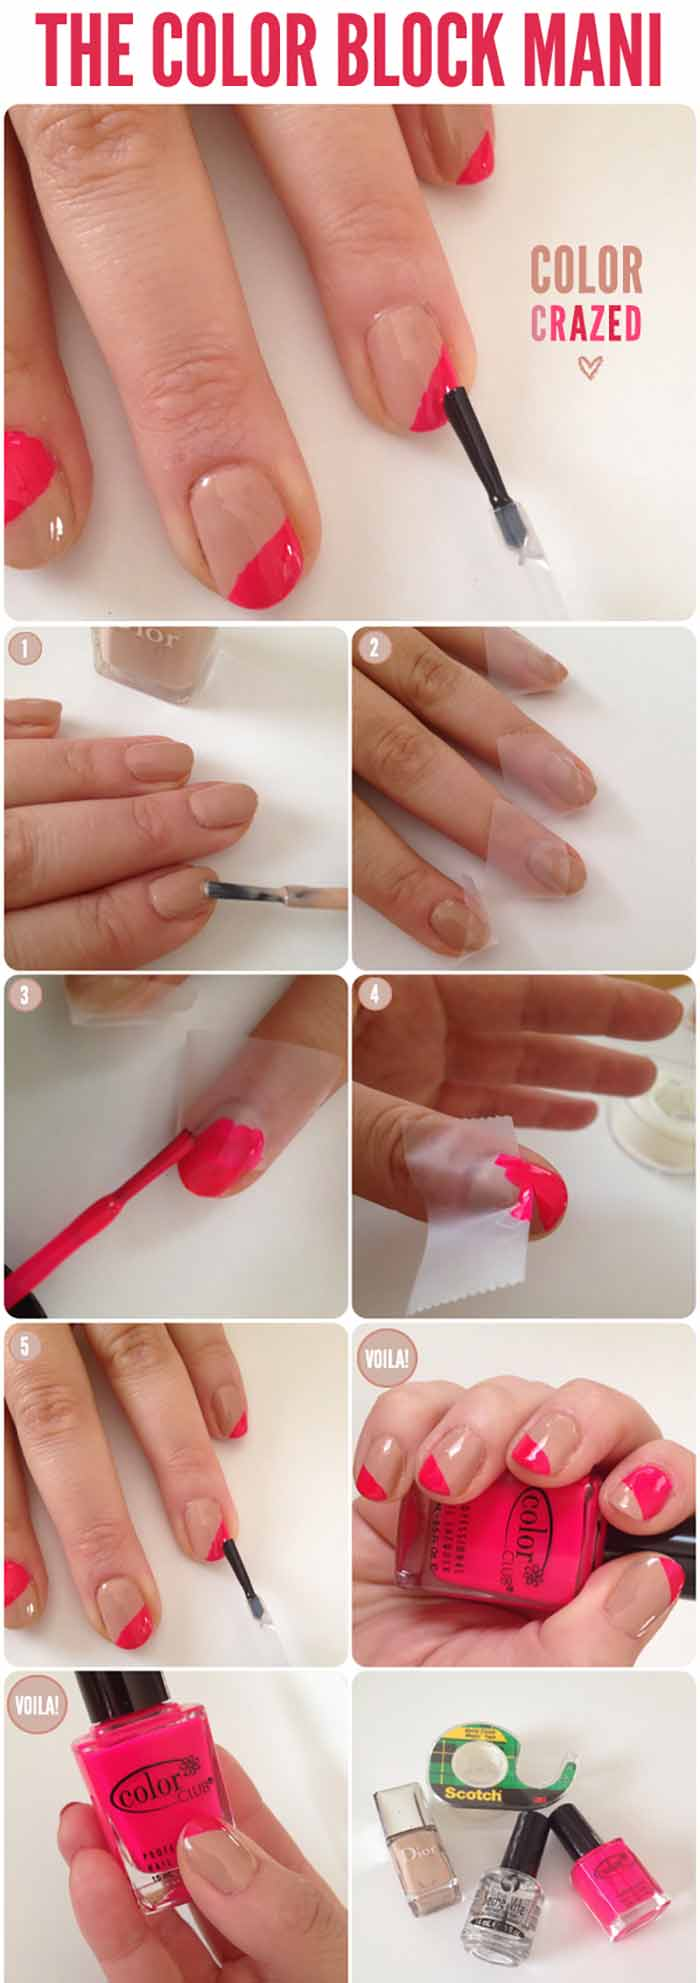 Top 60 easy nail designs for short nails 2018 update color block nail art manicure for short nails prinsesfo Gallery